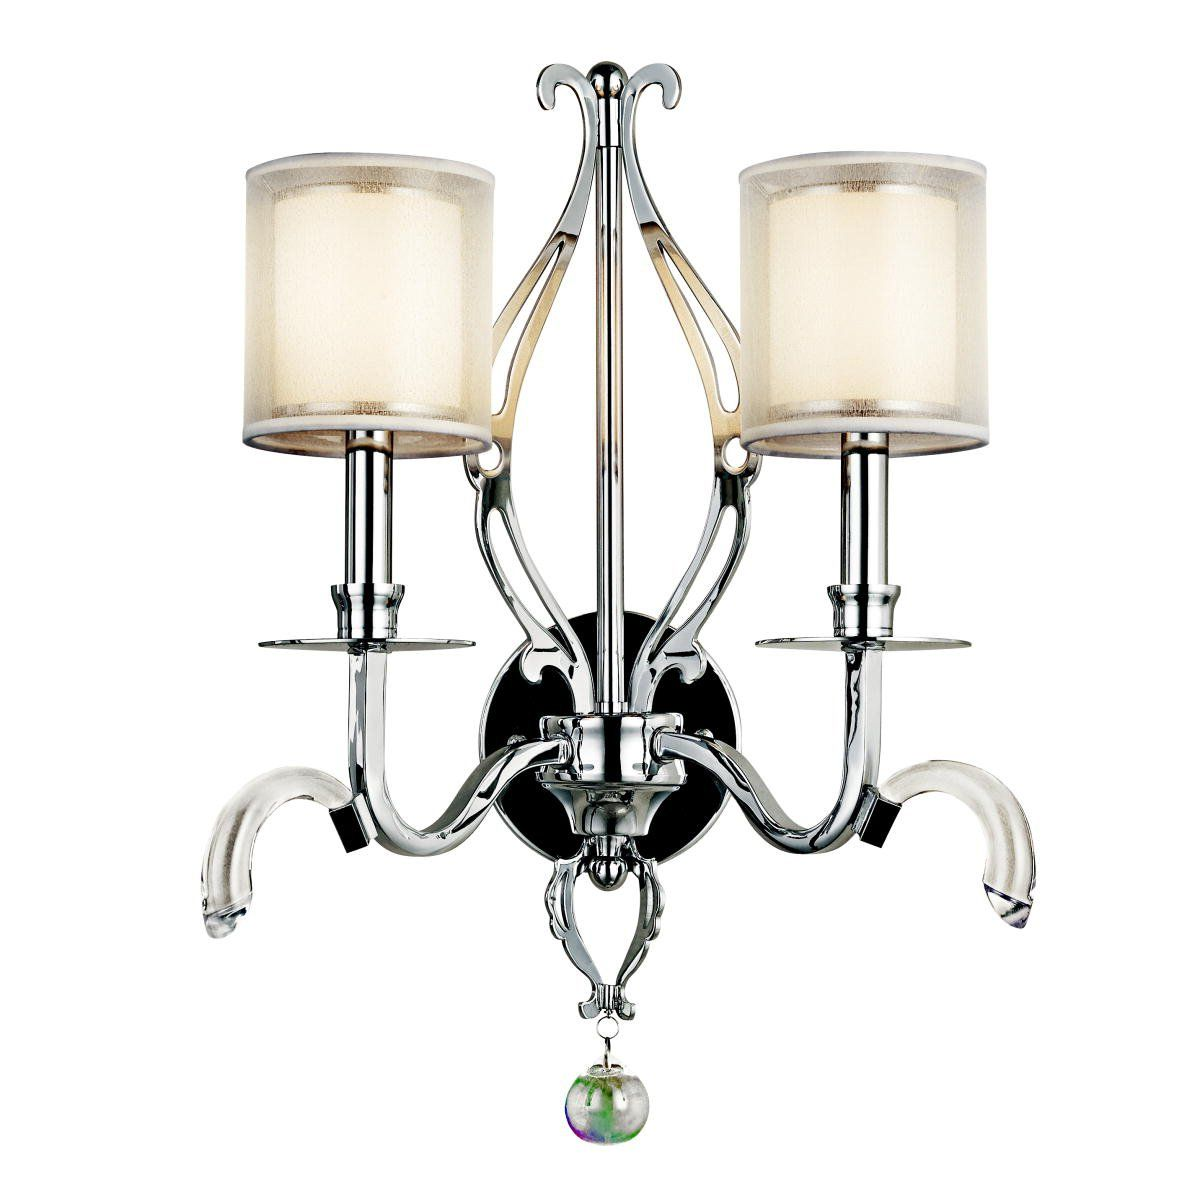 Kichler Lighting 42307CH 2 Light Jardine Wall Sconce ... on Decorative Wall Sconces Candle Holders Chrome Nickel id=49121